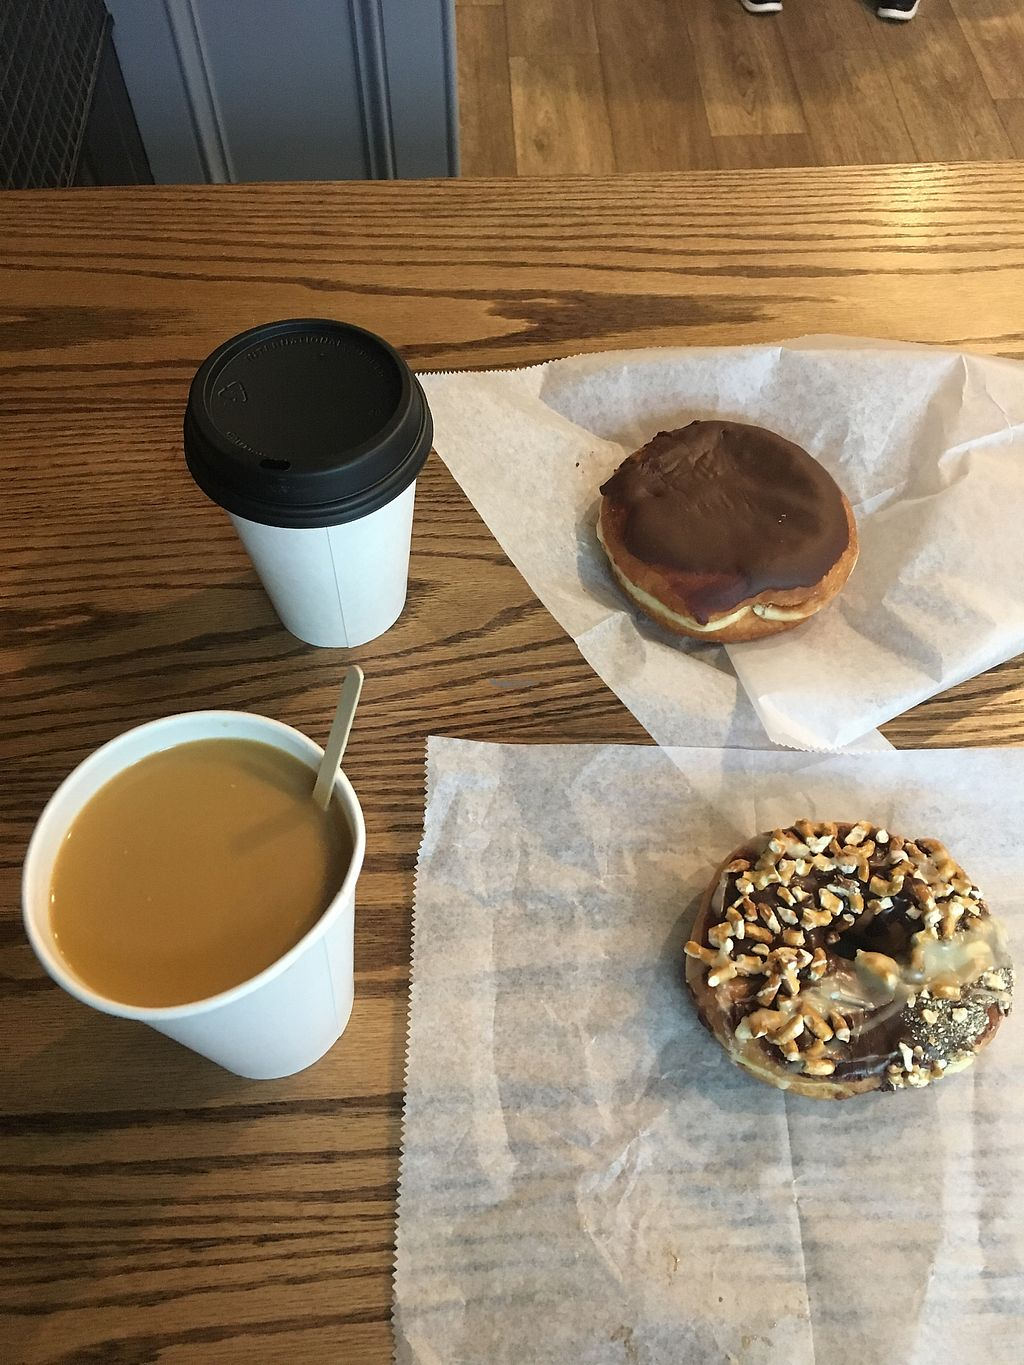 """Photo of Dottie's Donuts - Queen's Village  by <a href=""""/members/profile/770veg"""">770veg</a> <br/>Delightful! <br/> February 22, 2018  - <a href='/contact/abuse/image/100922/362463'>Report</a>"""